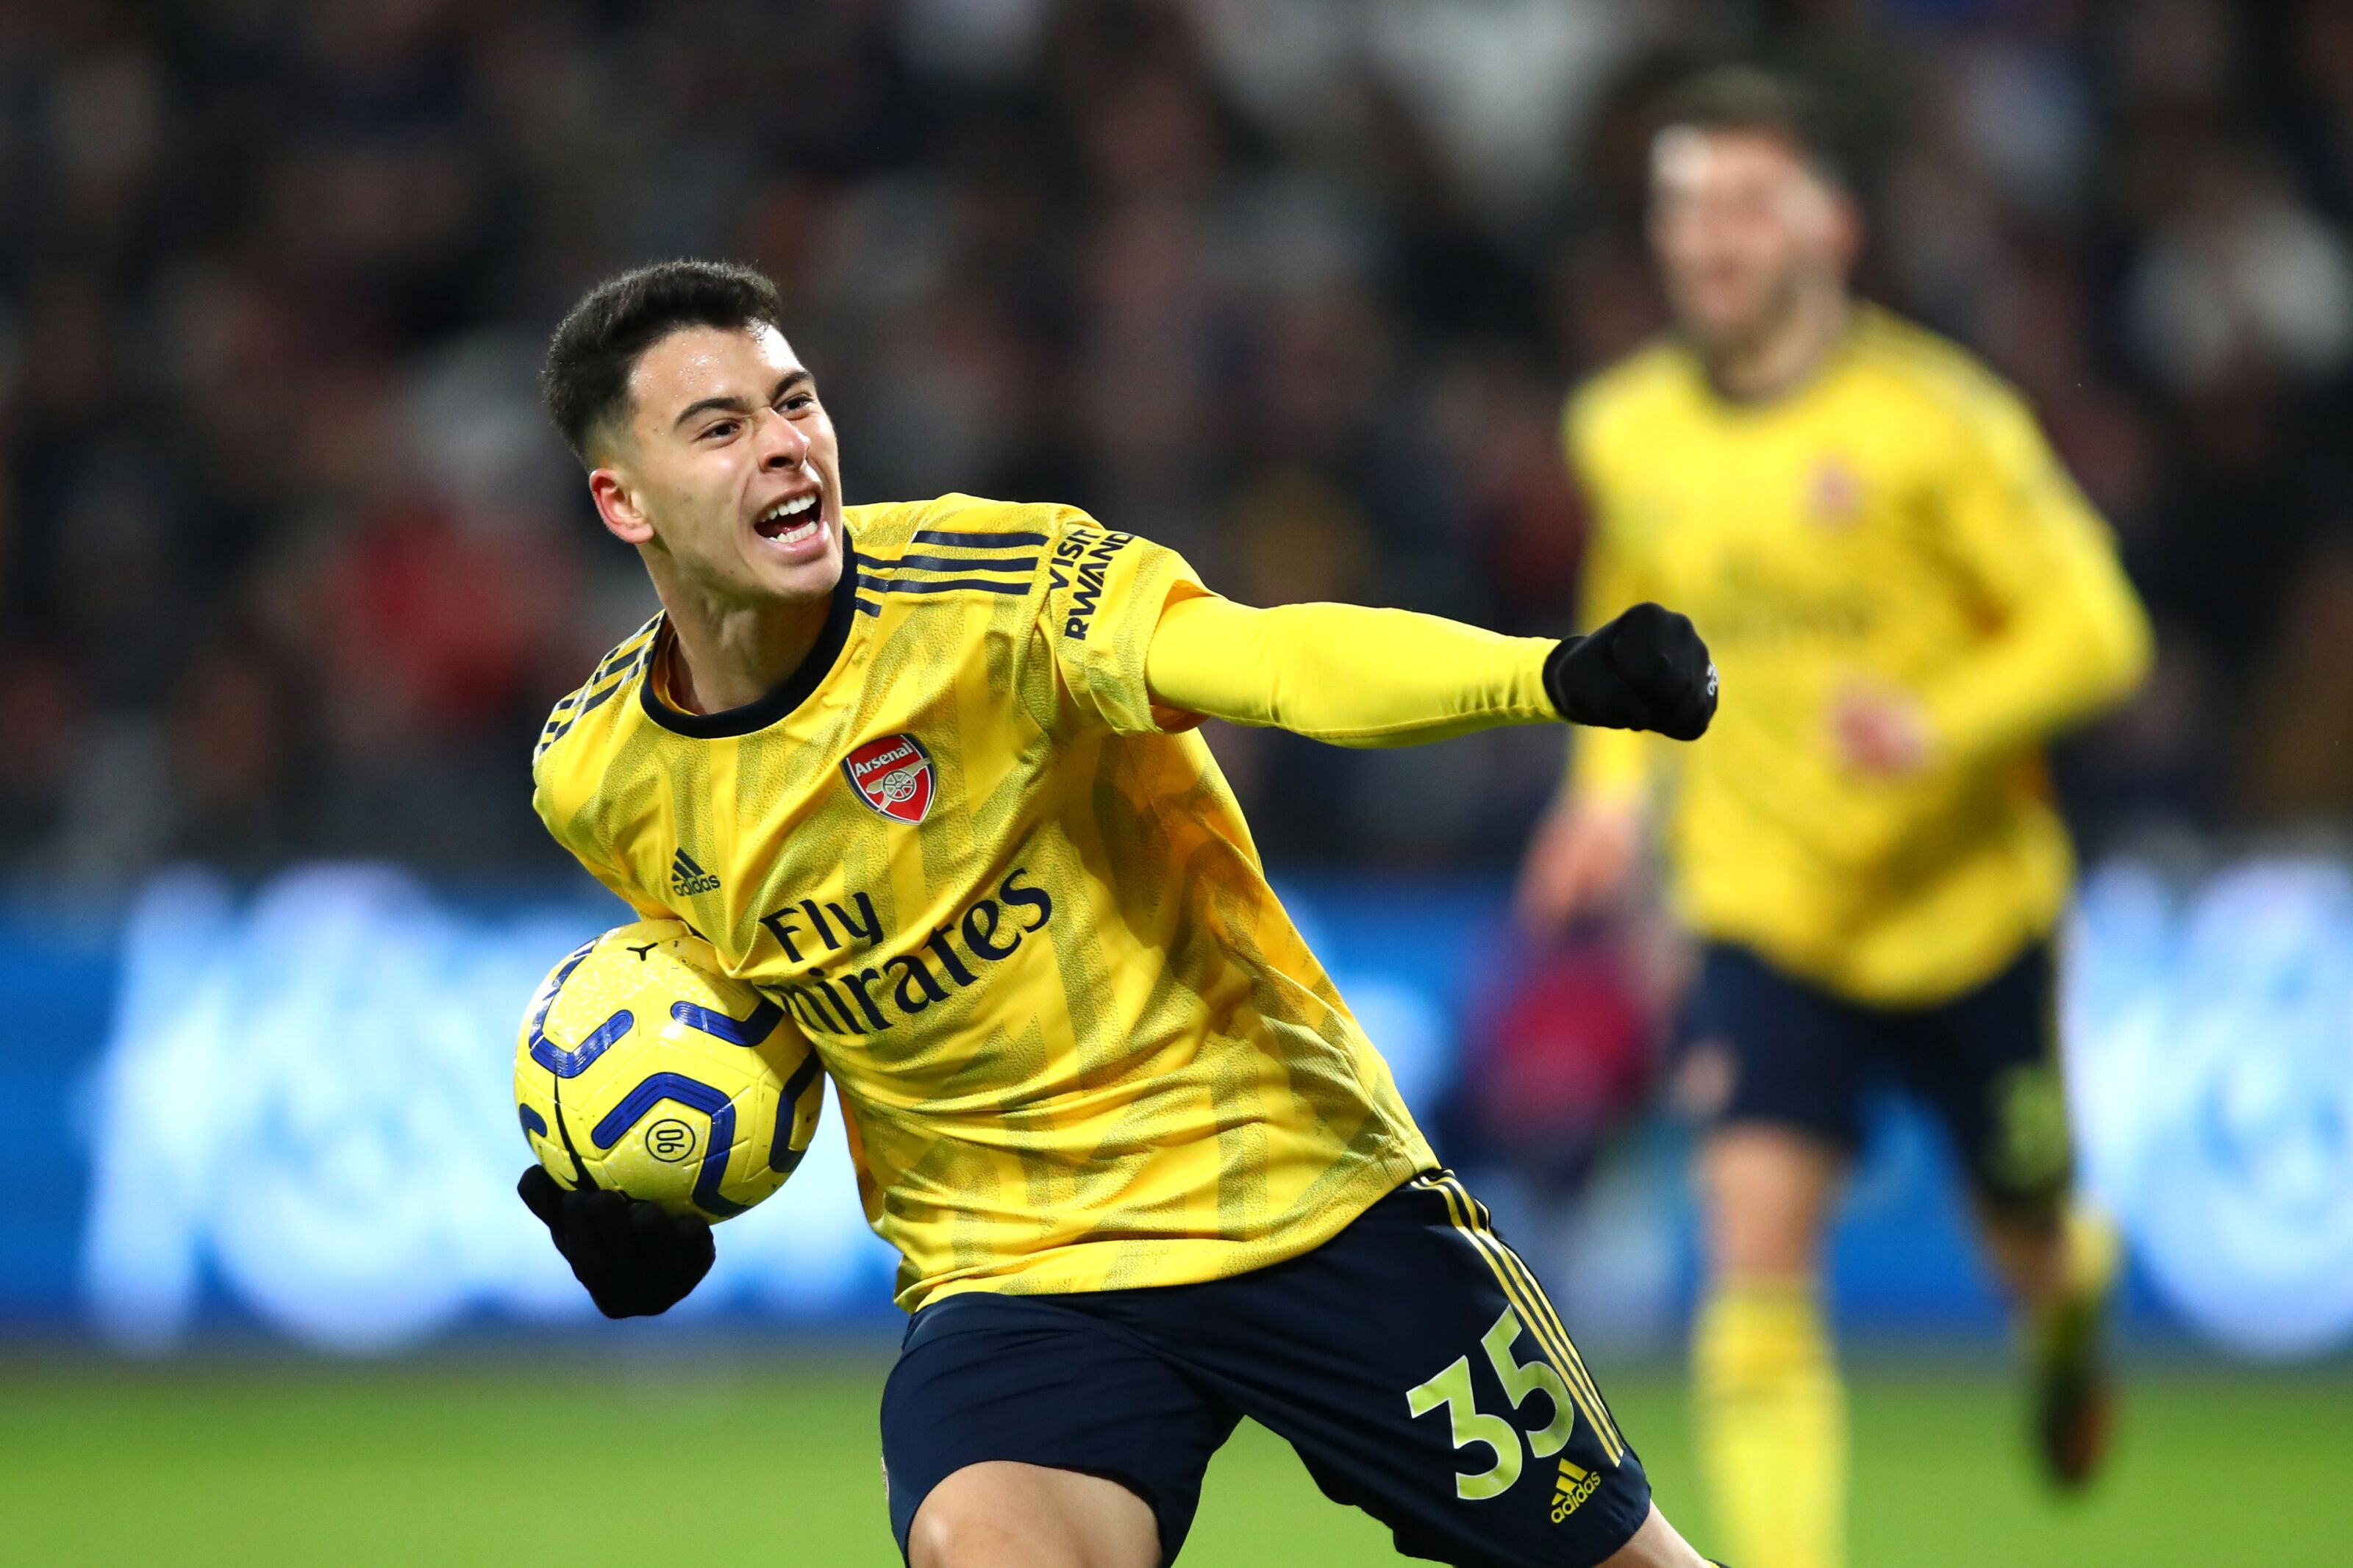 Arsenal: Now that Unai Emery's gone, can Gabriel Martinelli be a striker?